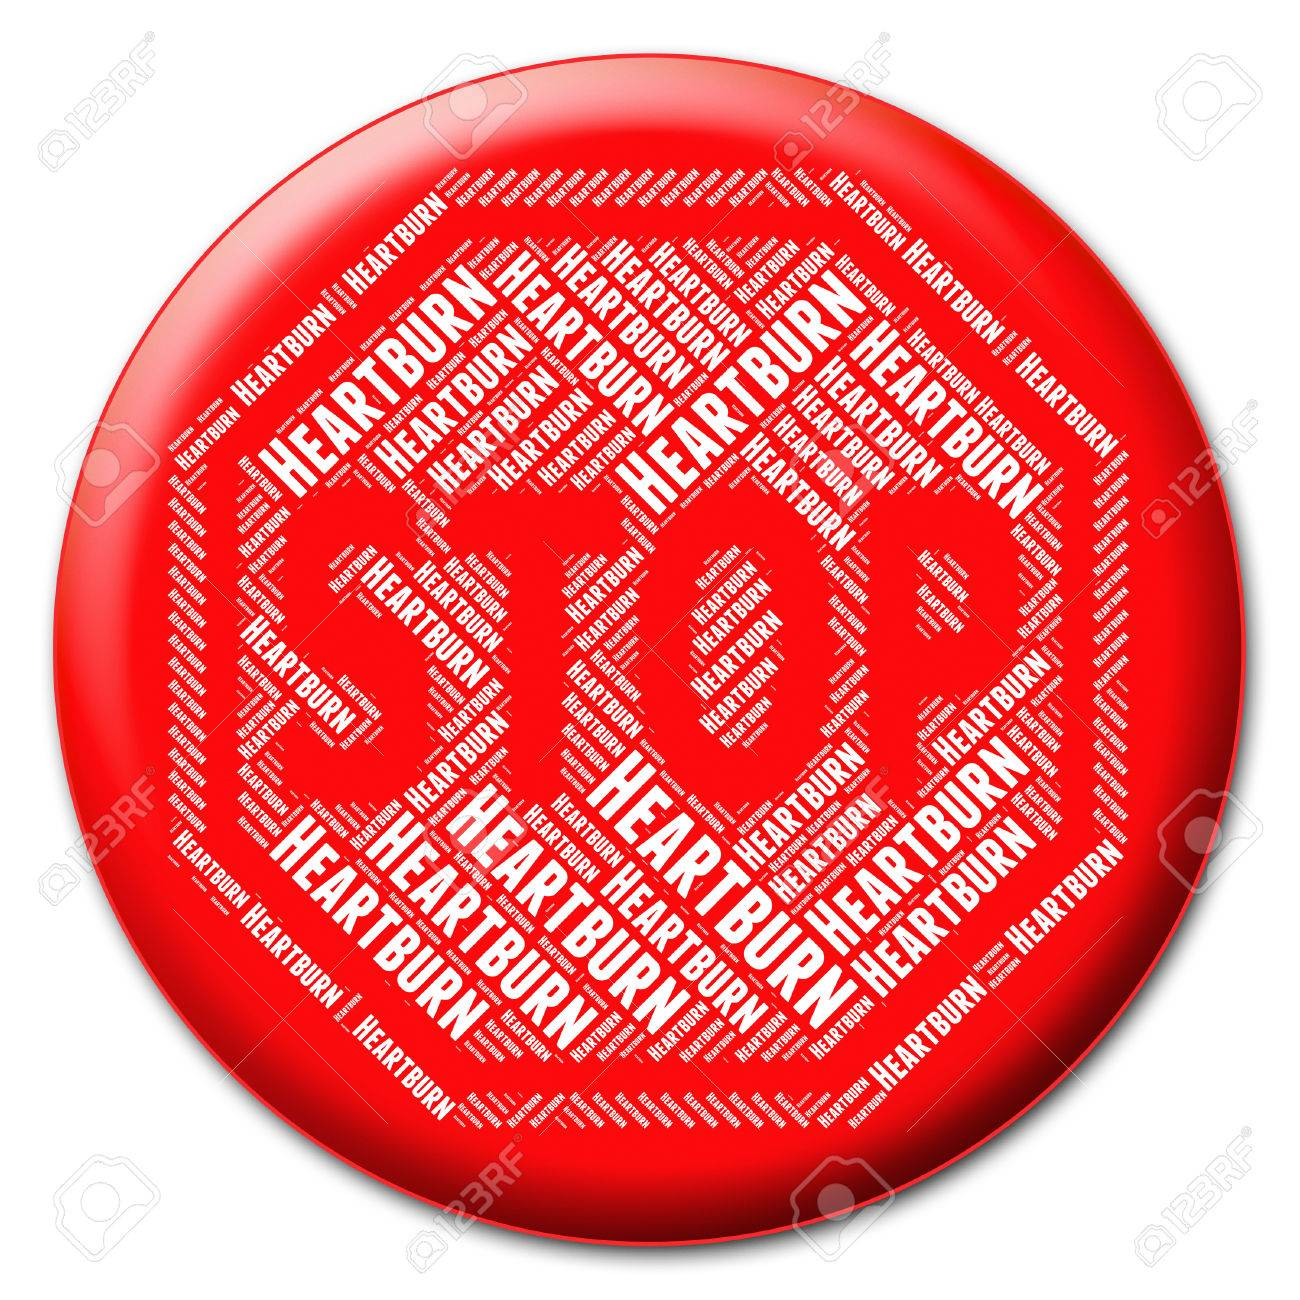 Stop Heartburn Meaning Acid Indigestion And Caution